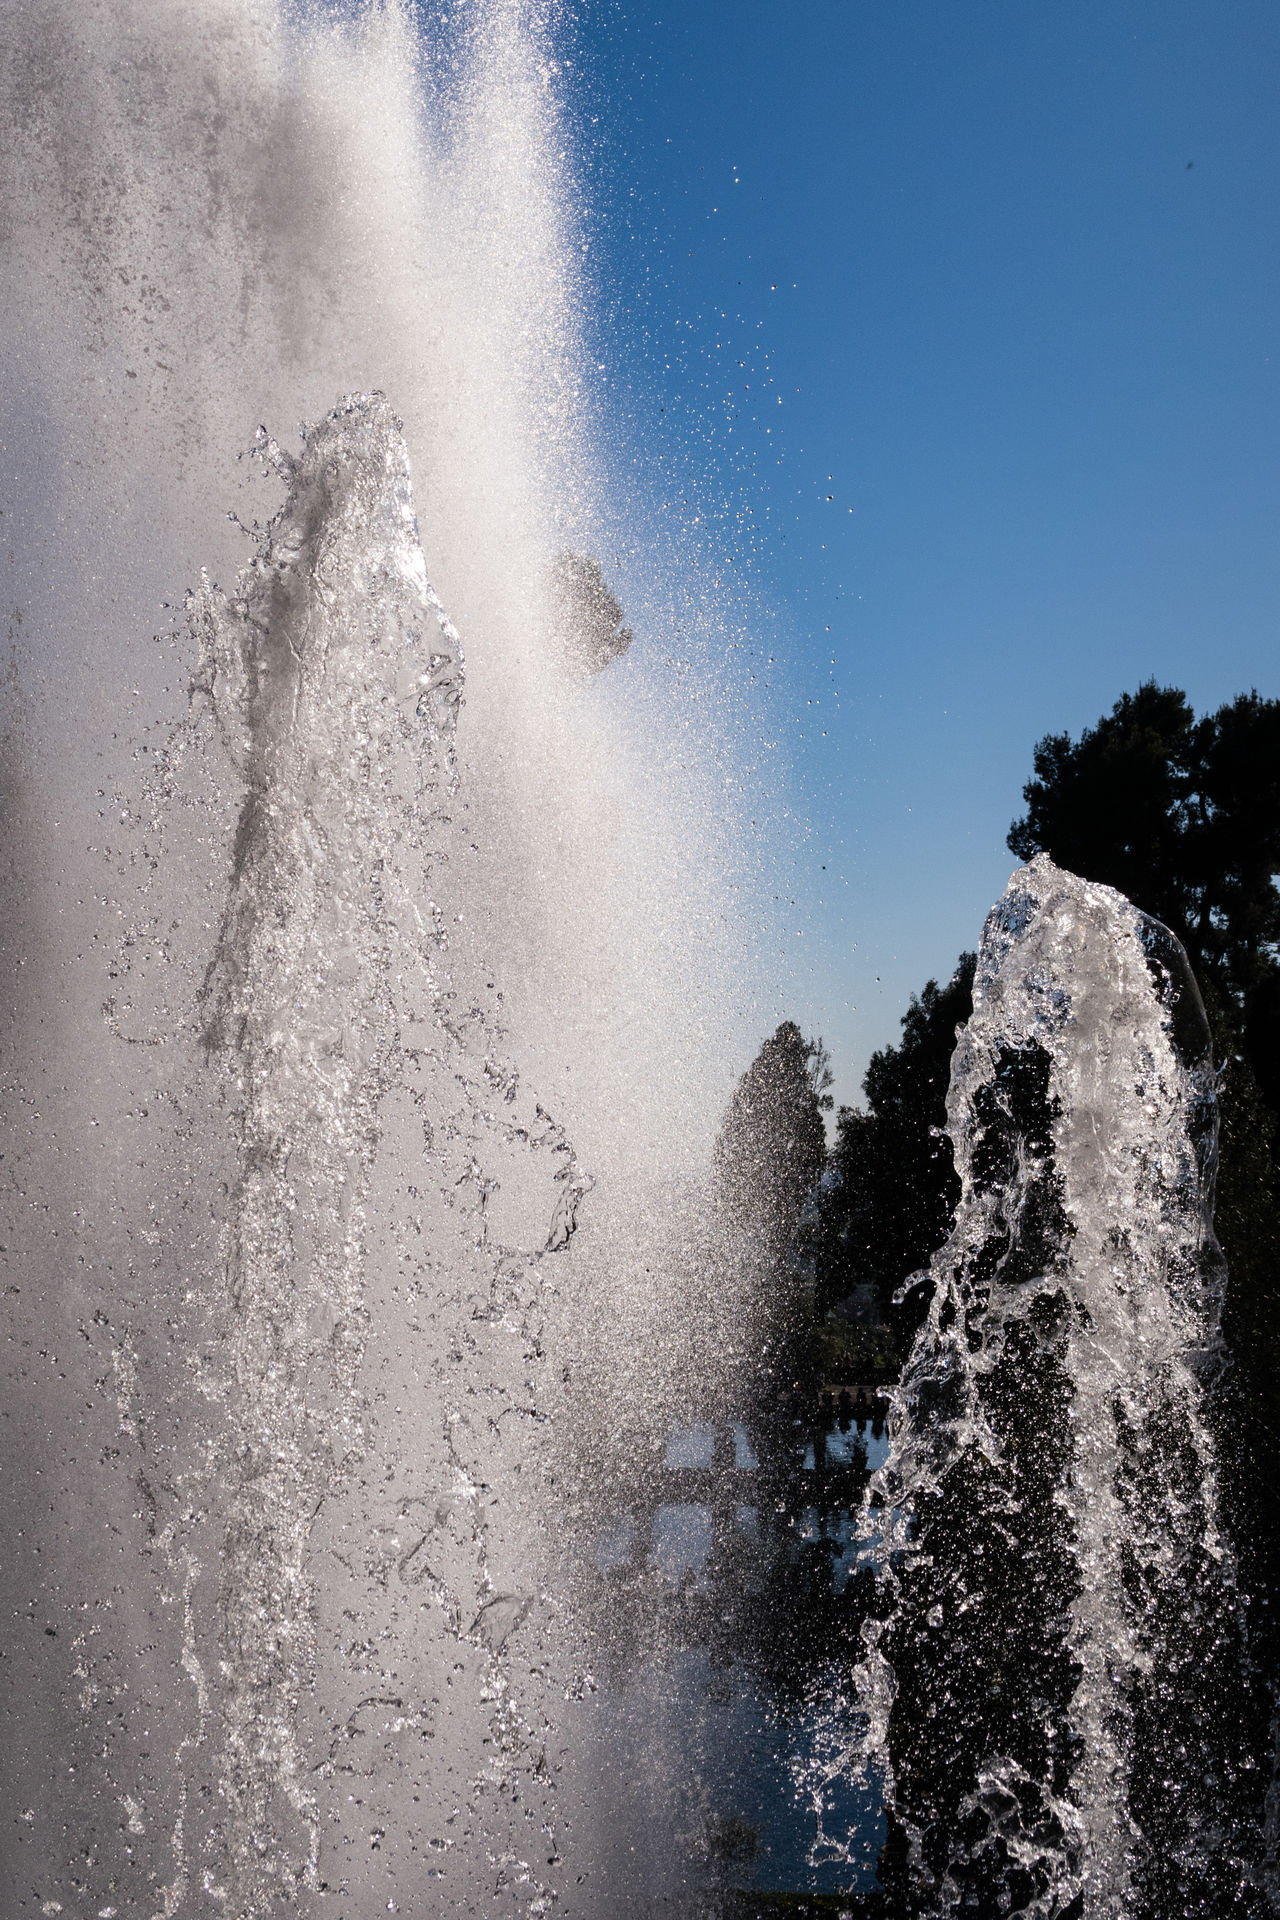 Beauty In Nature Close-up Day Force Fountain Historical Building Motion Nature No People Outdoors Power In Nature Splashing Spraying Tourism Tourist Attraction  Villa D'Este Water World Heritage Site